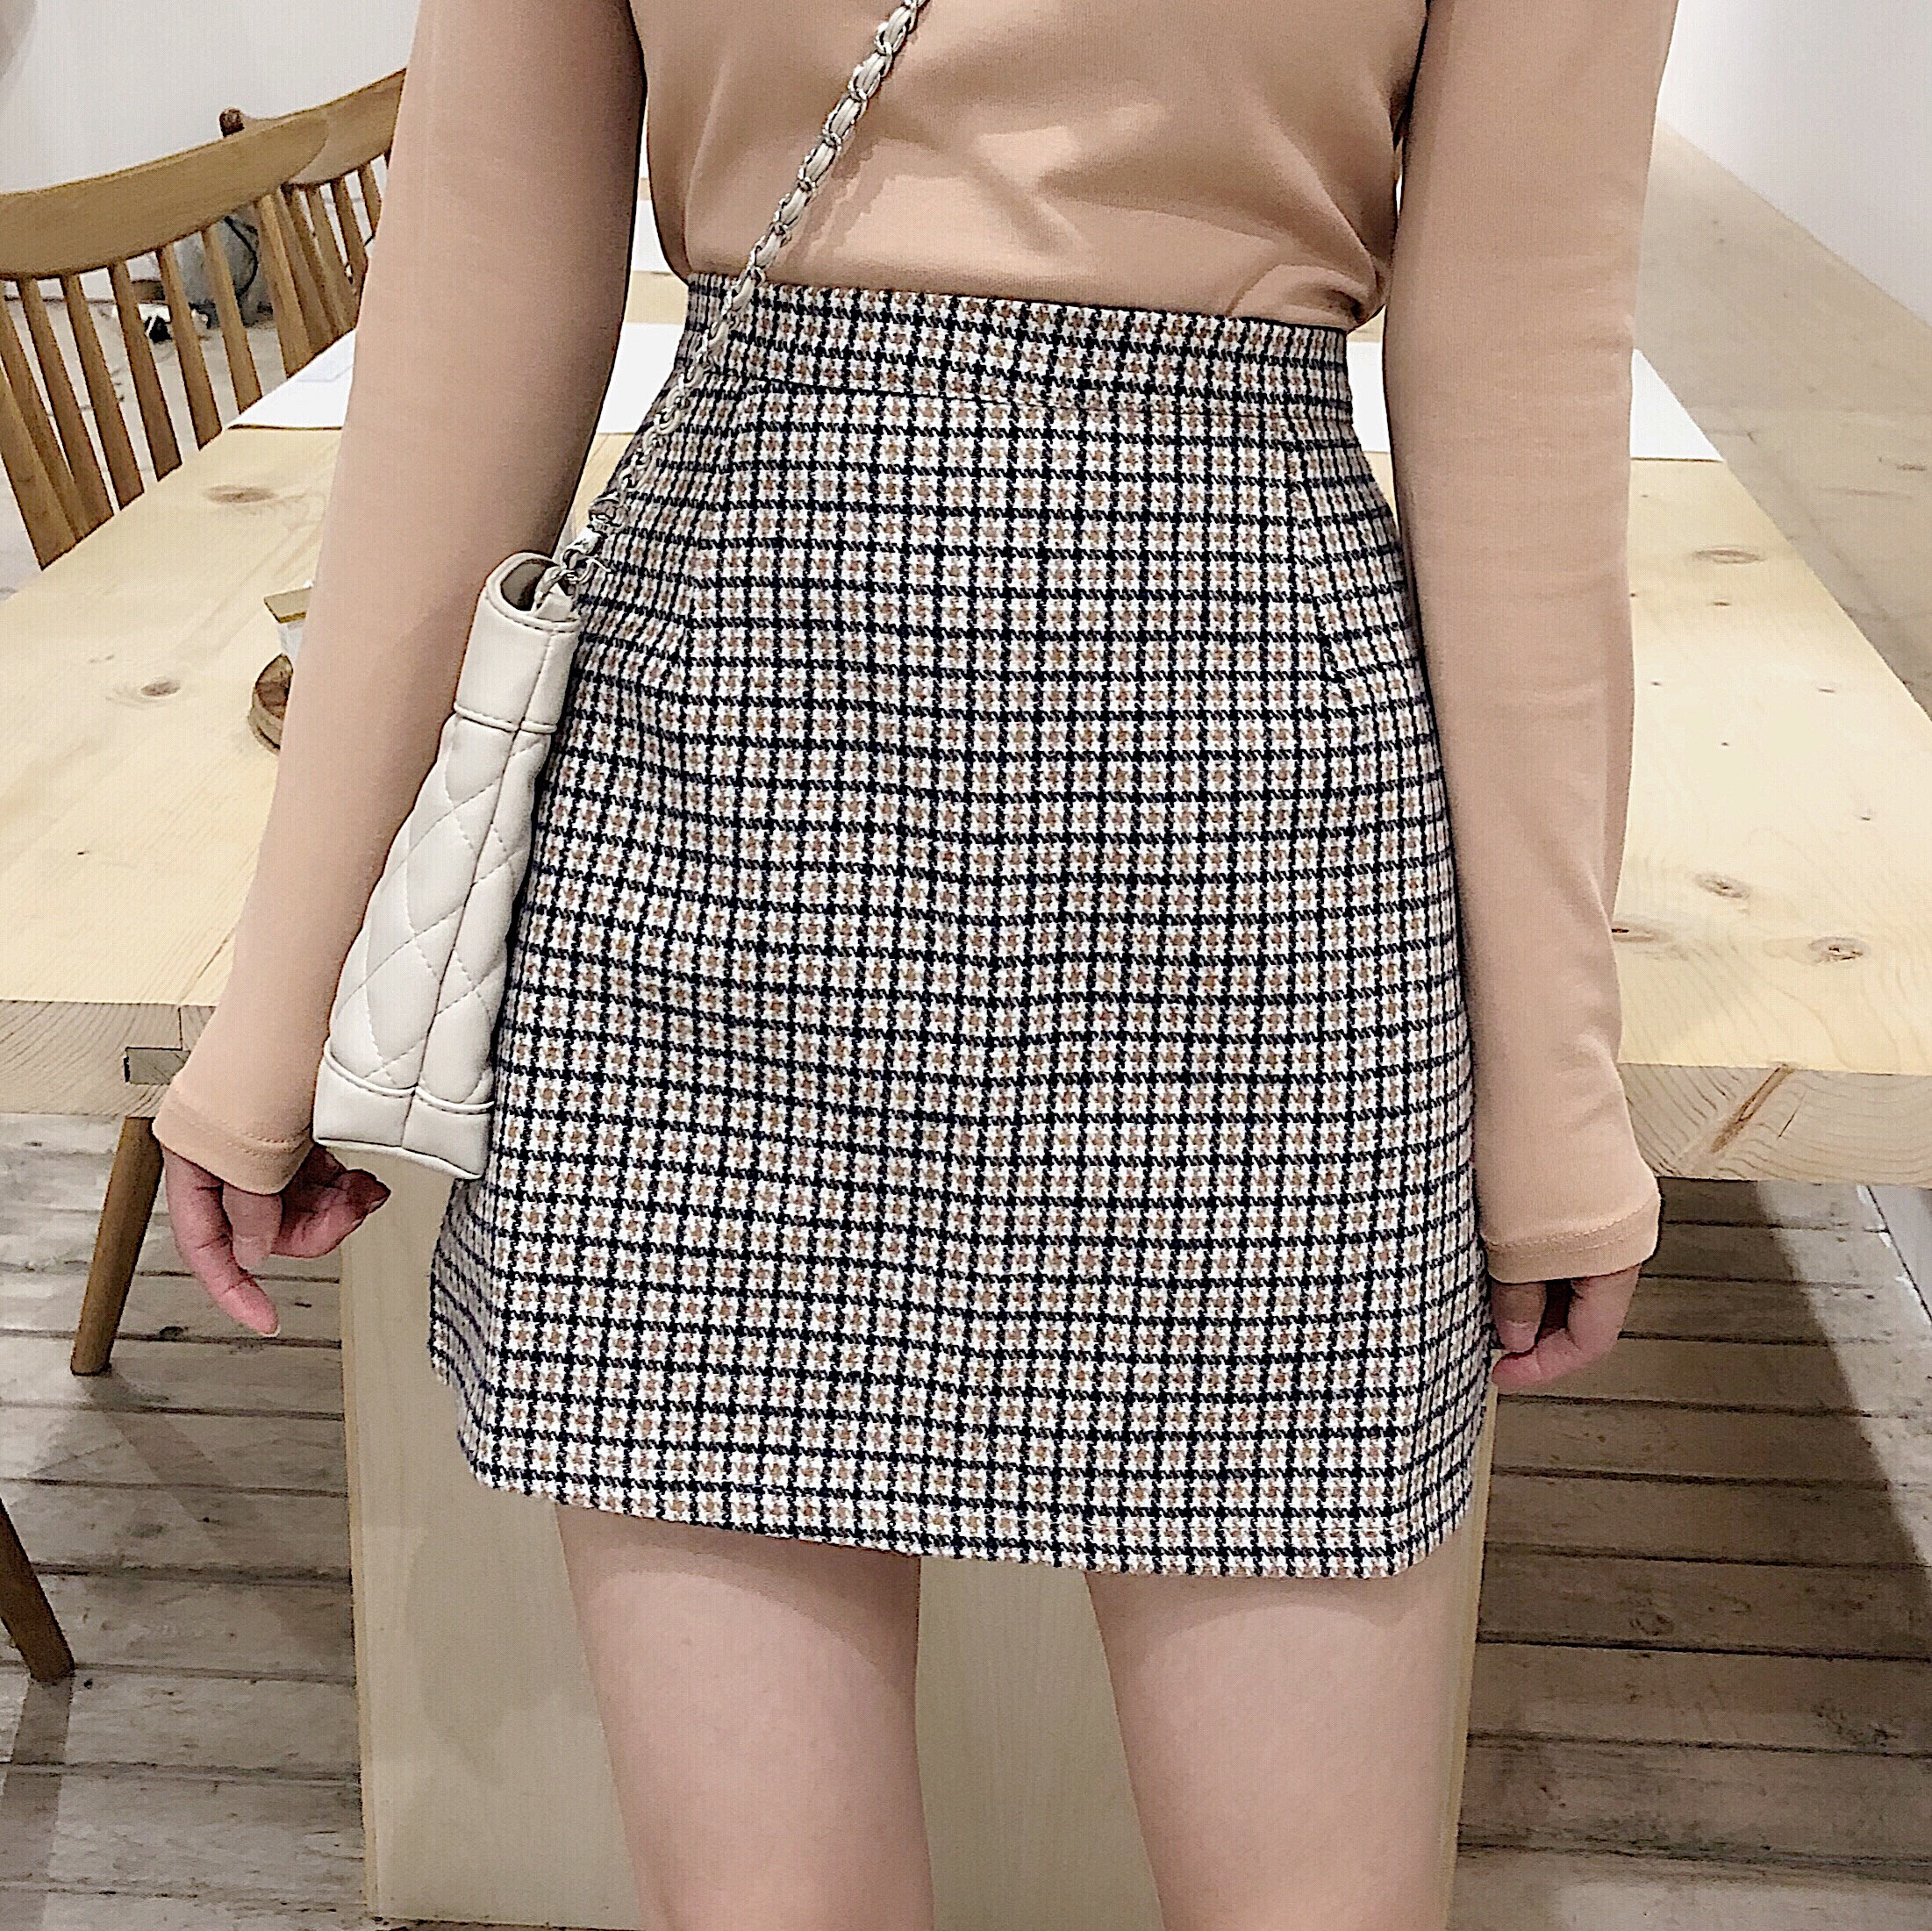 Vintage Plaid Skirts Women Houndstooth Autumn Short Skirts Mini Korean Harajuku Pencil Skirts Sexy Office Casual High Waist V680